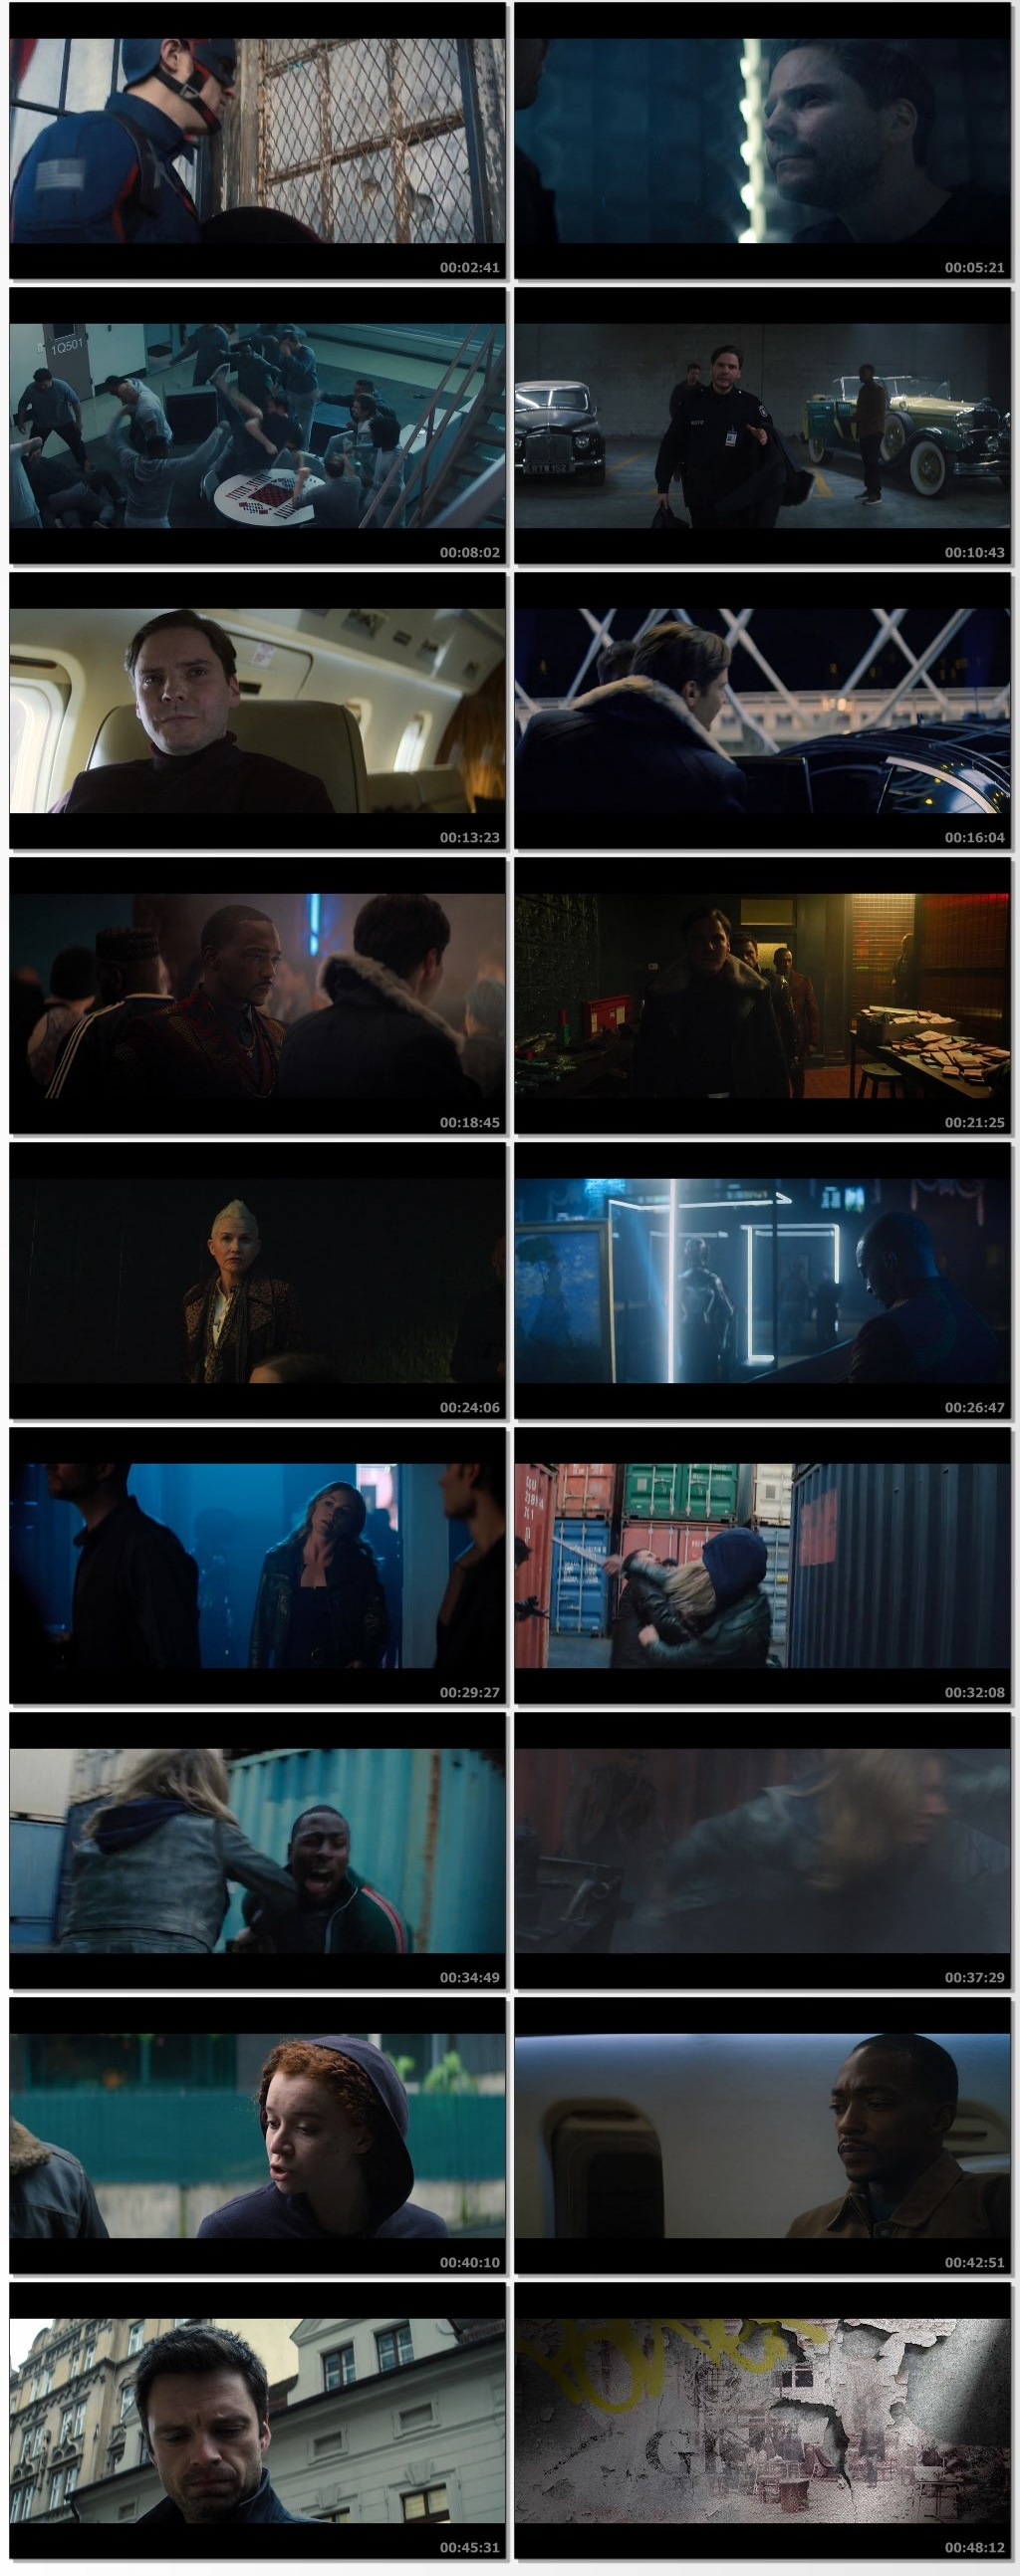 The-Falcon-and-the-Winter-Soldier-2021-Hindi-Season-1-Episode-3-720p-www-7-Star-HD-Cheap-mkv-thumbs